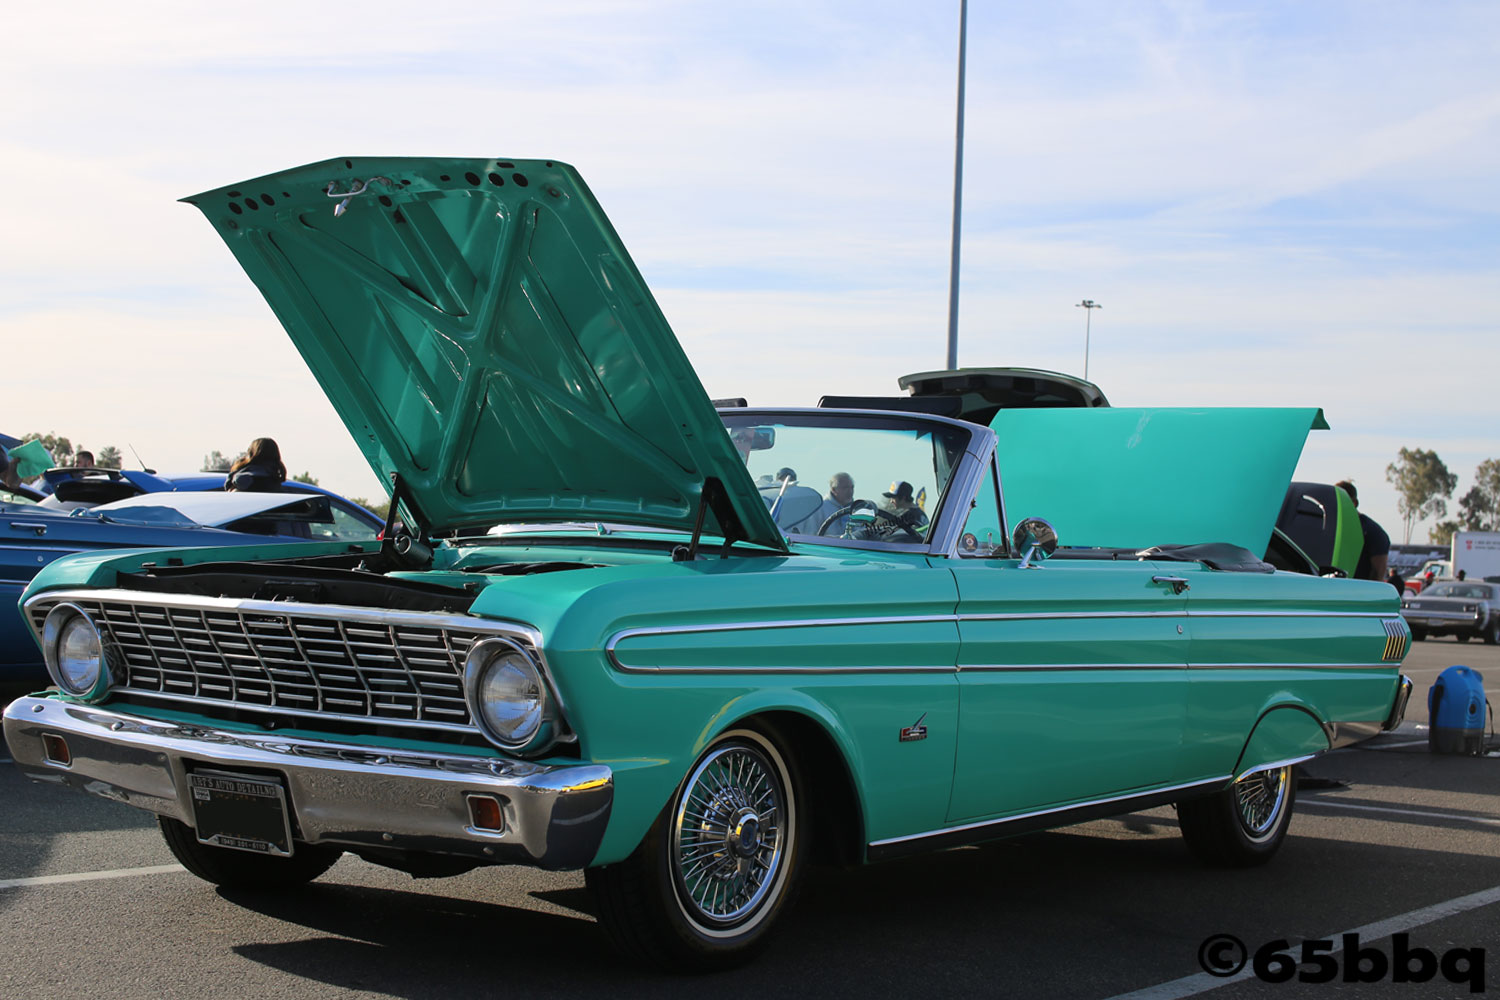 fabulous-fords-forever-april-2019-65bbq-f22.jpg